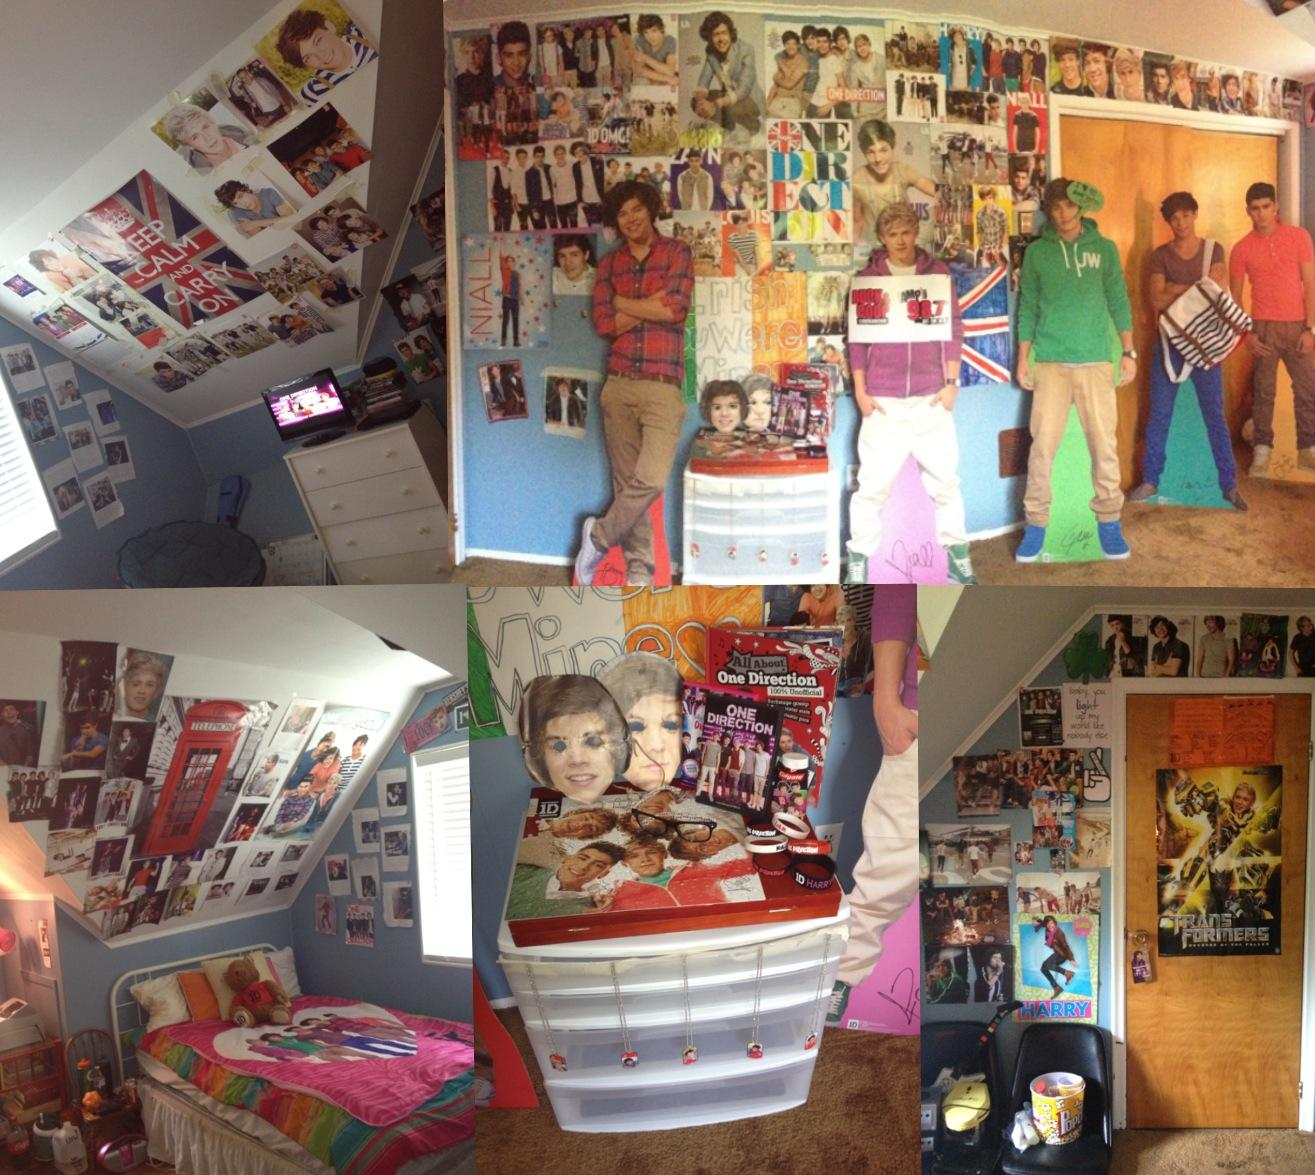 Sophomore Lona Contardi's room is decked out in One Direction after a failed attempt to win sound check passes from 98.7 AMP radio.  Photo credit: Lona Contardi